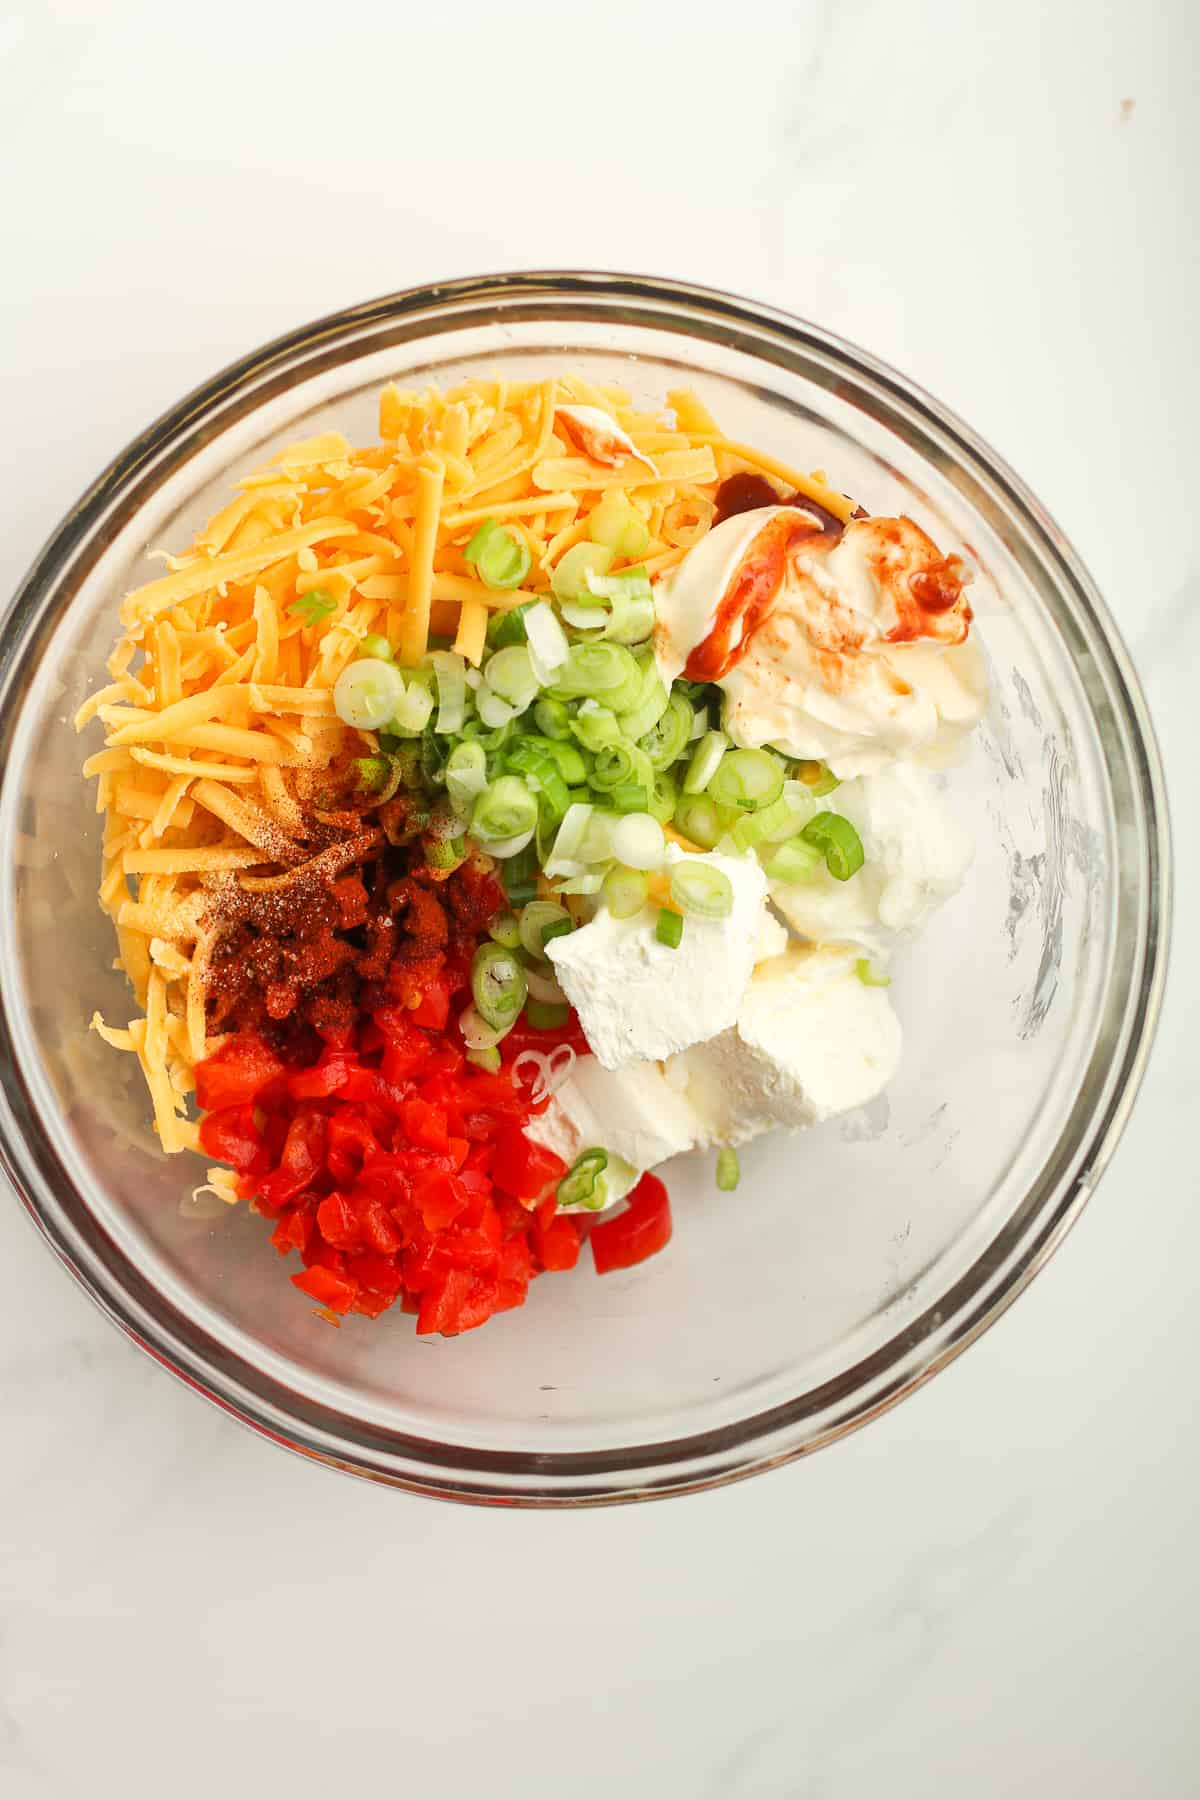 A bowl of the pimento cheese ingredients.